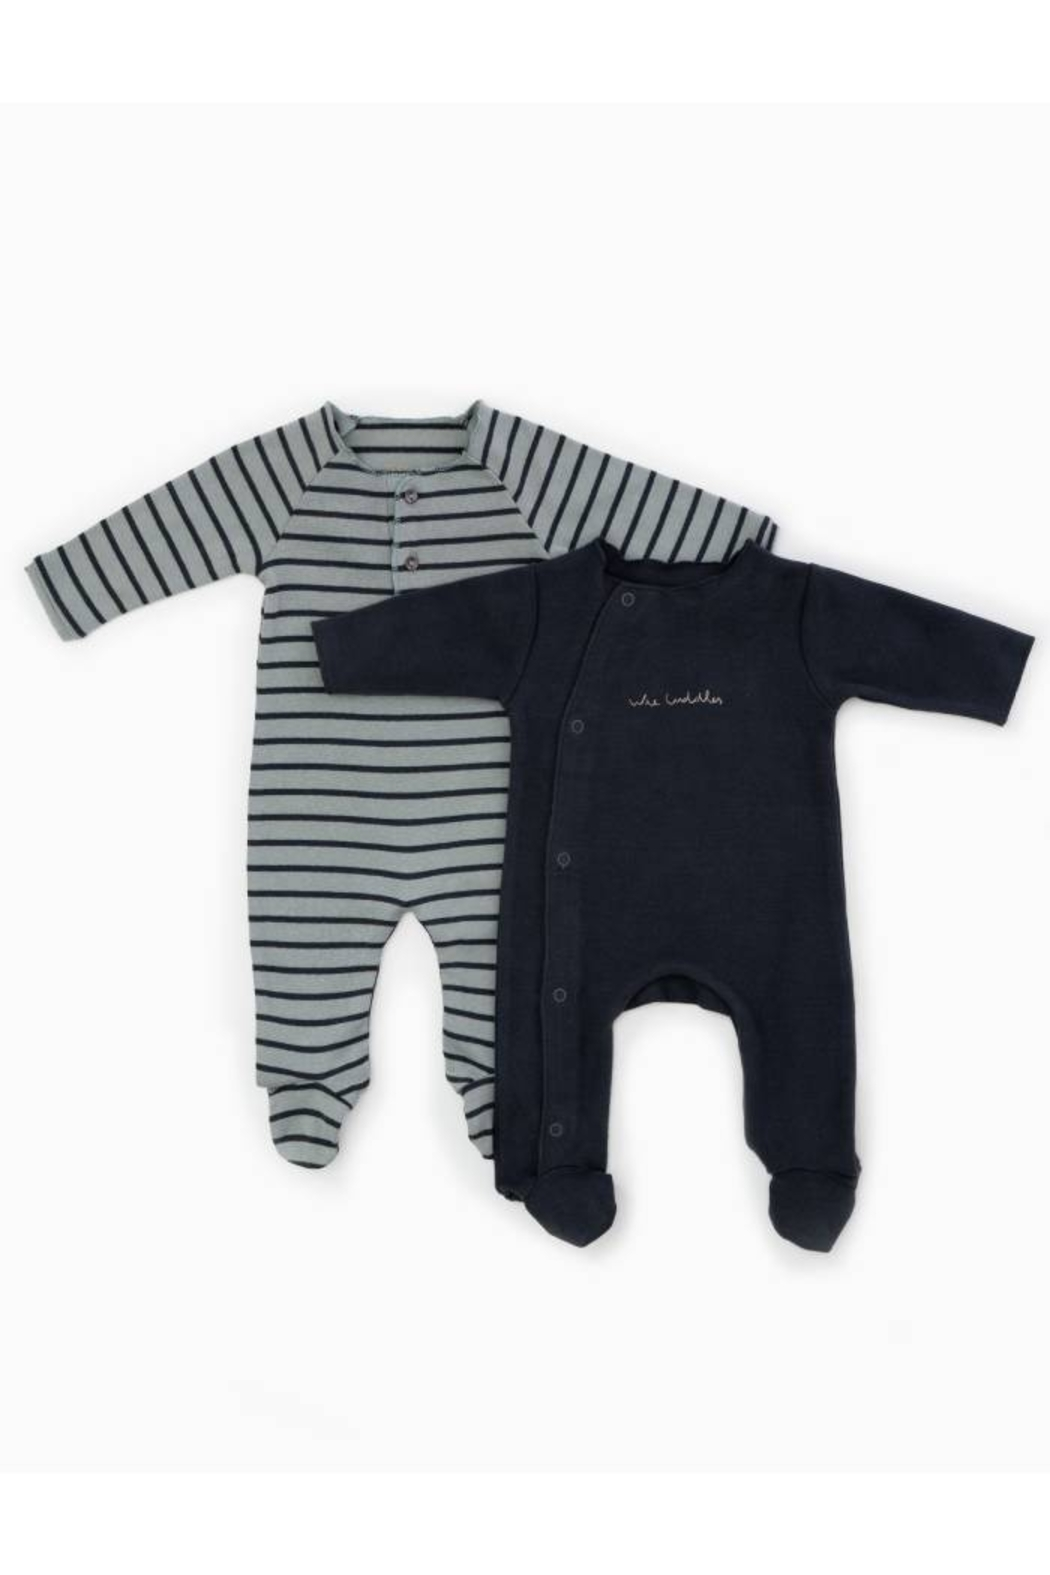 Play Up Organic Cotton Stripped Ribbed Baby Grow Set Footie (Pack of 2) - Main Image